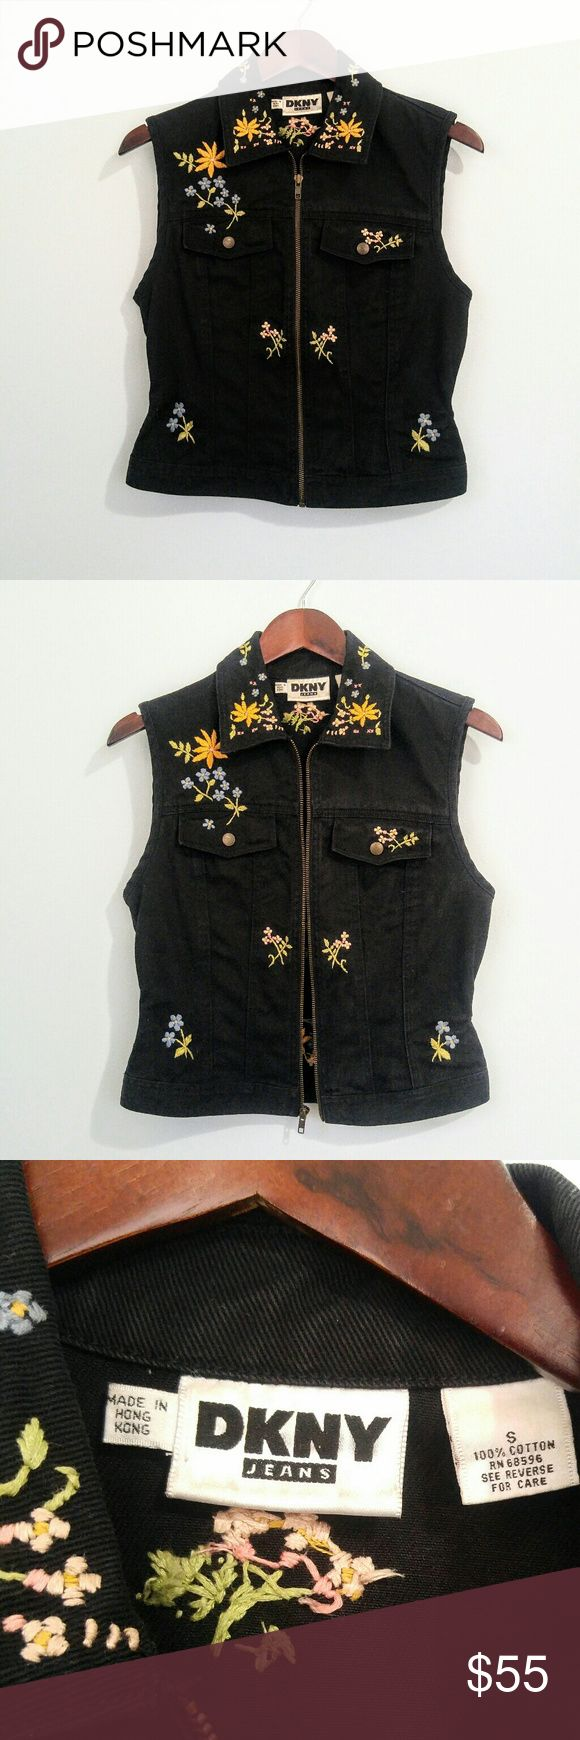 Vintage DKNY Embroidered Black Denim Vest size S Excellent condition DKNY floral embroidered black denim vest. Size small. Very slight fading.  Shipped within 24 hours of purchase. All offers welcomed & bundles always discounted. Thanks for looking :) Dkny Jackets & Coats Vests